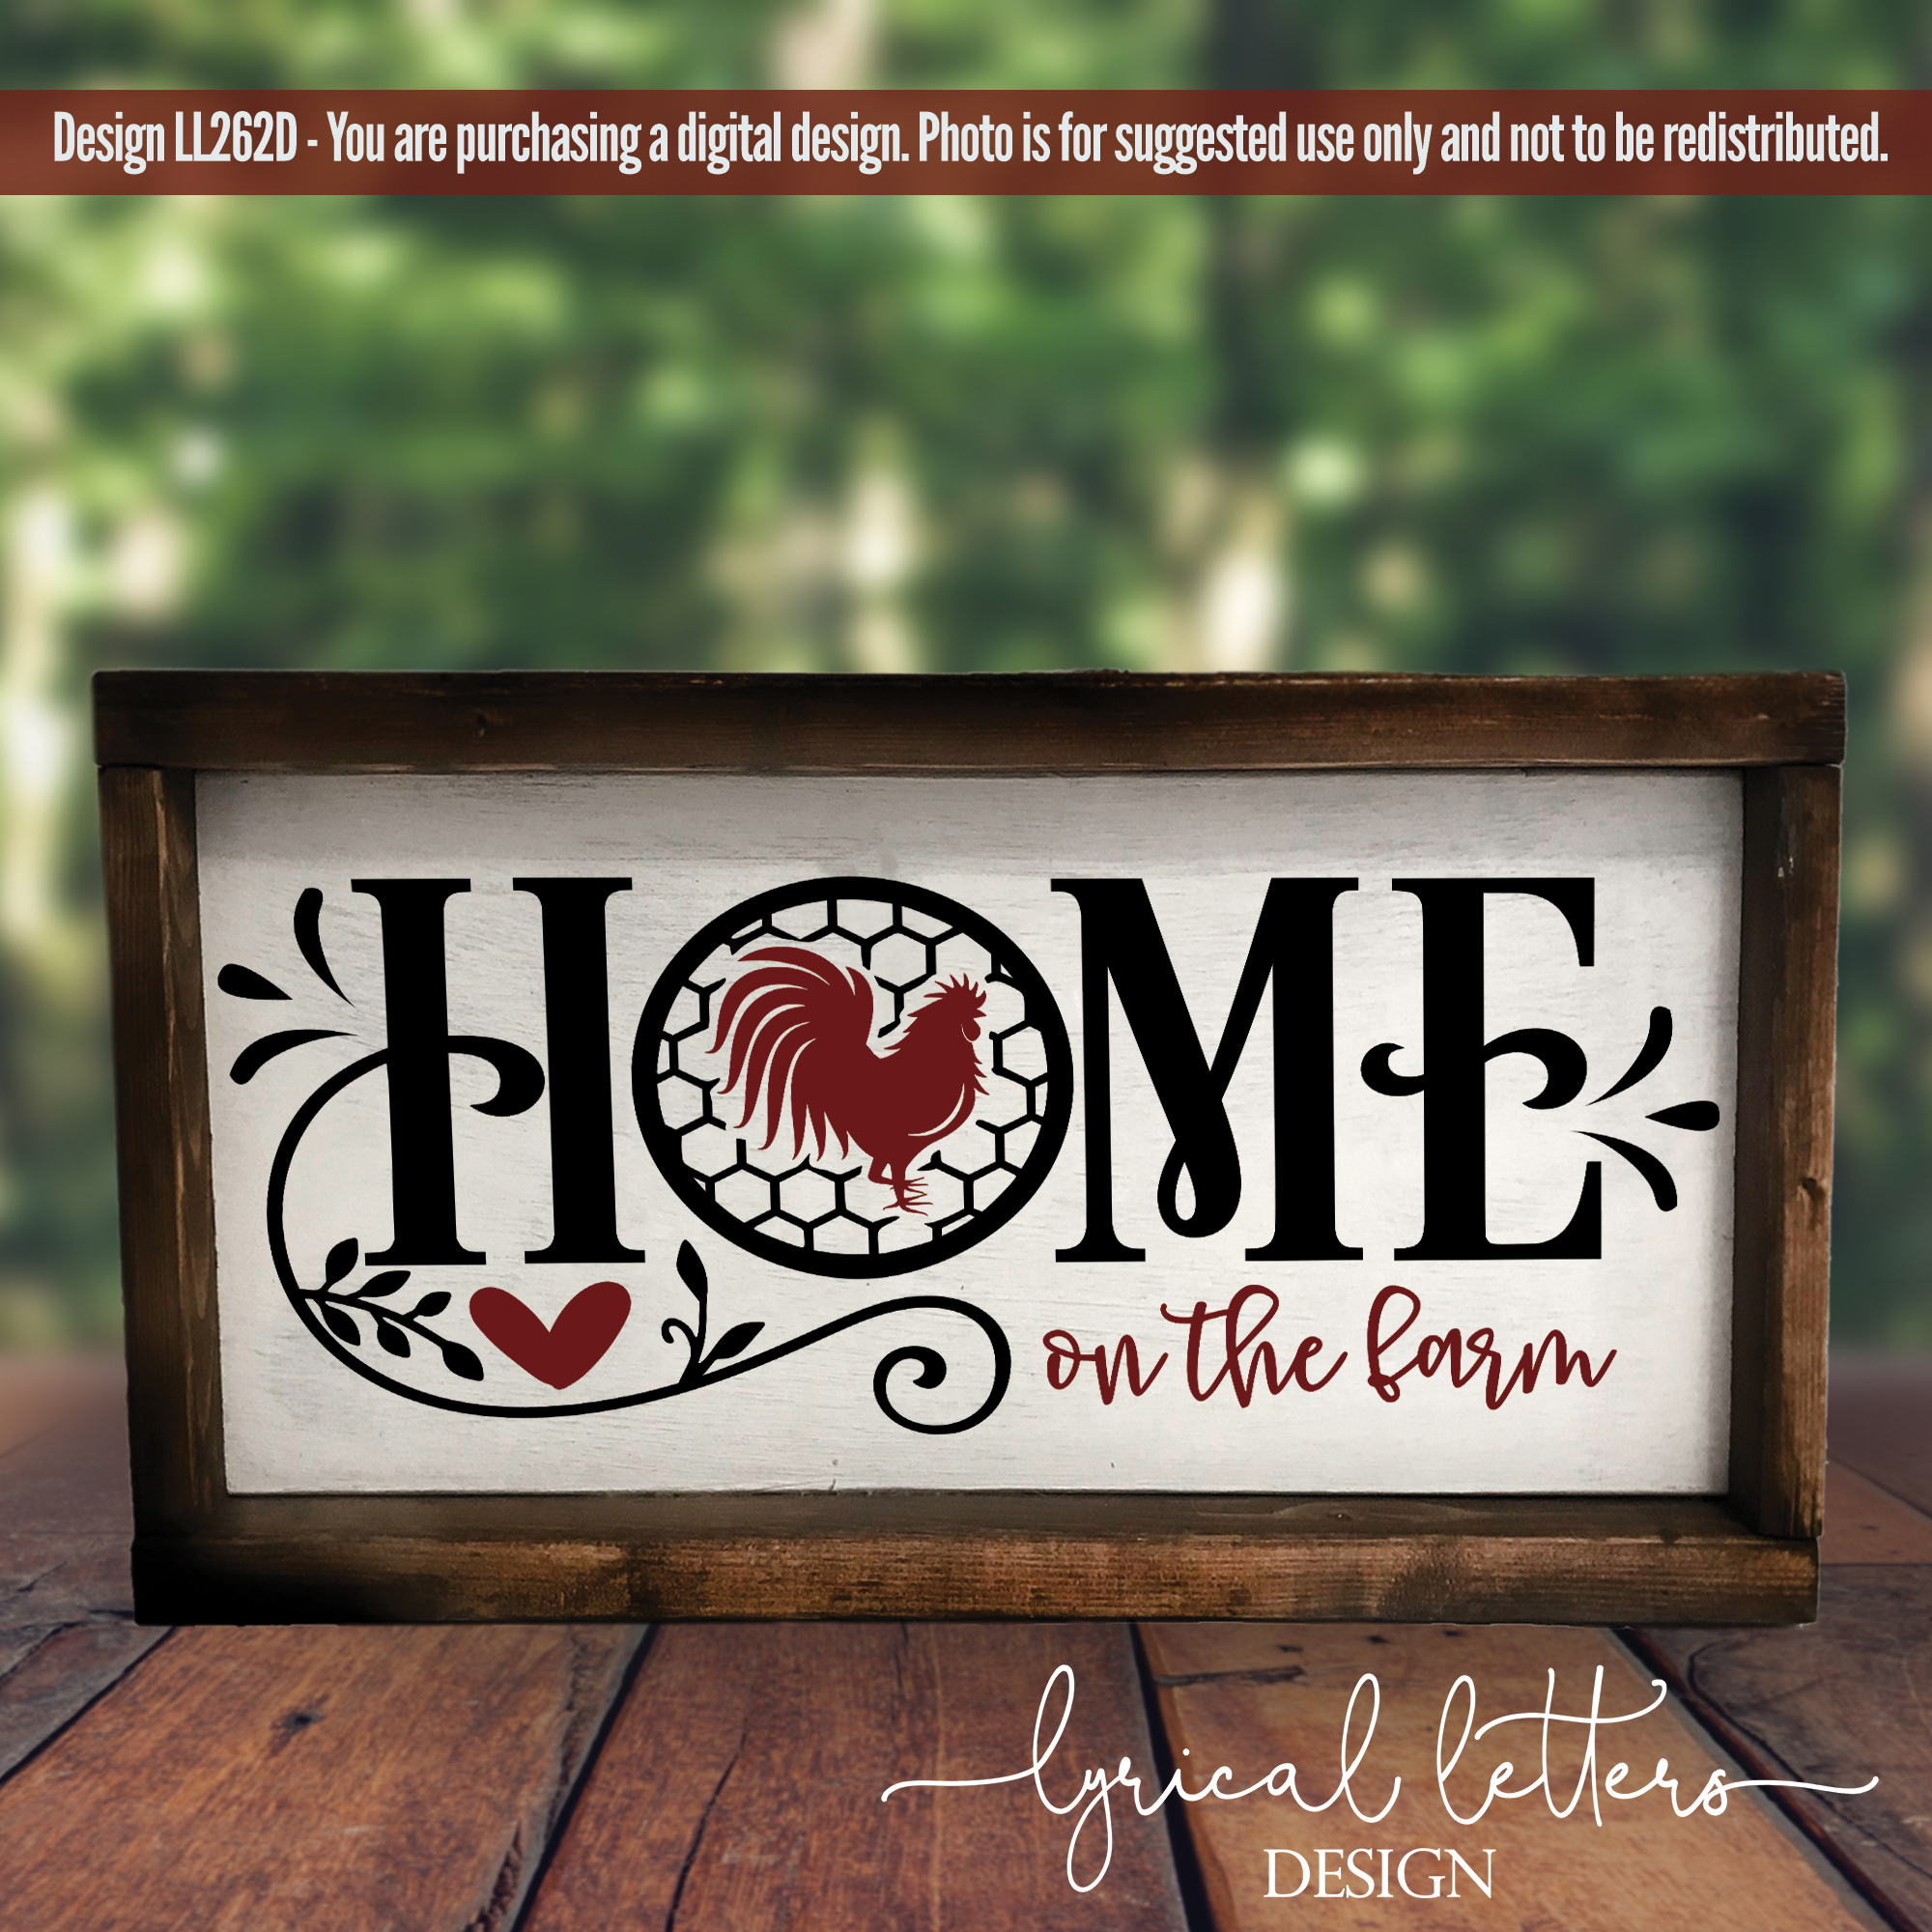 Farmhouse Home on the Farm with Rooster SVG DXF LL262D example image 2